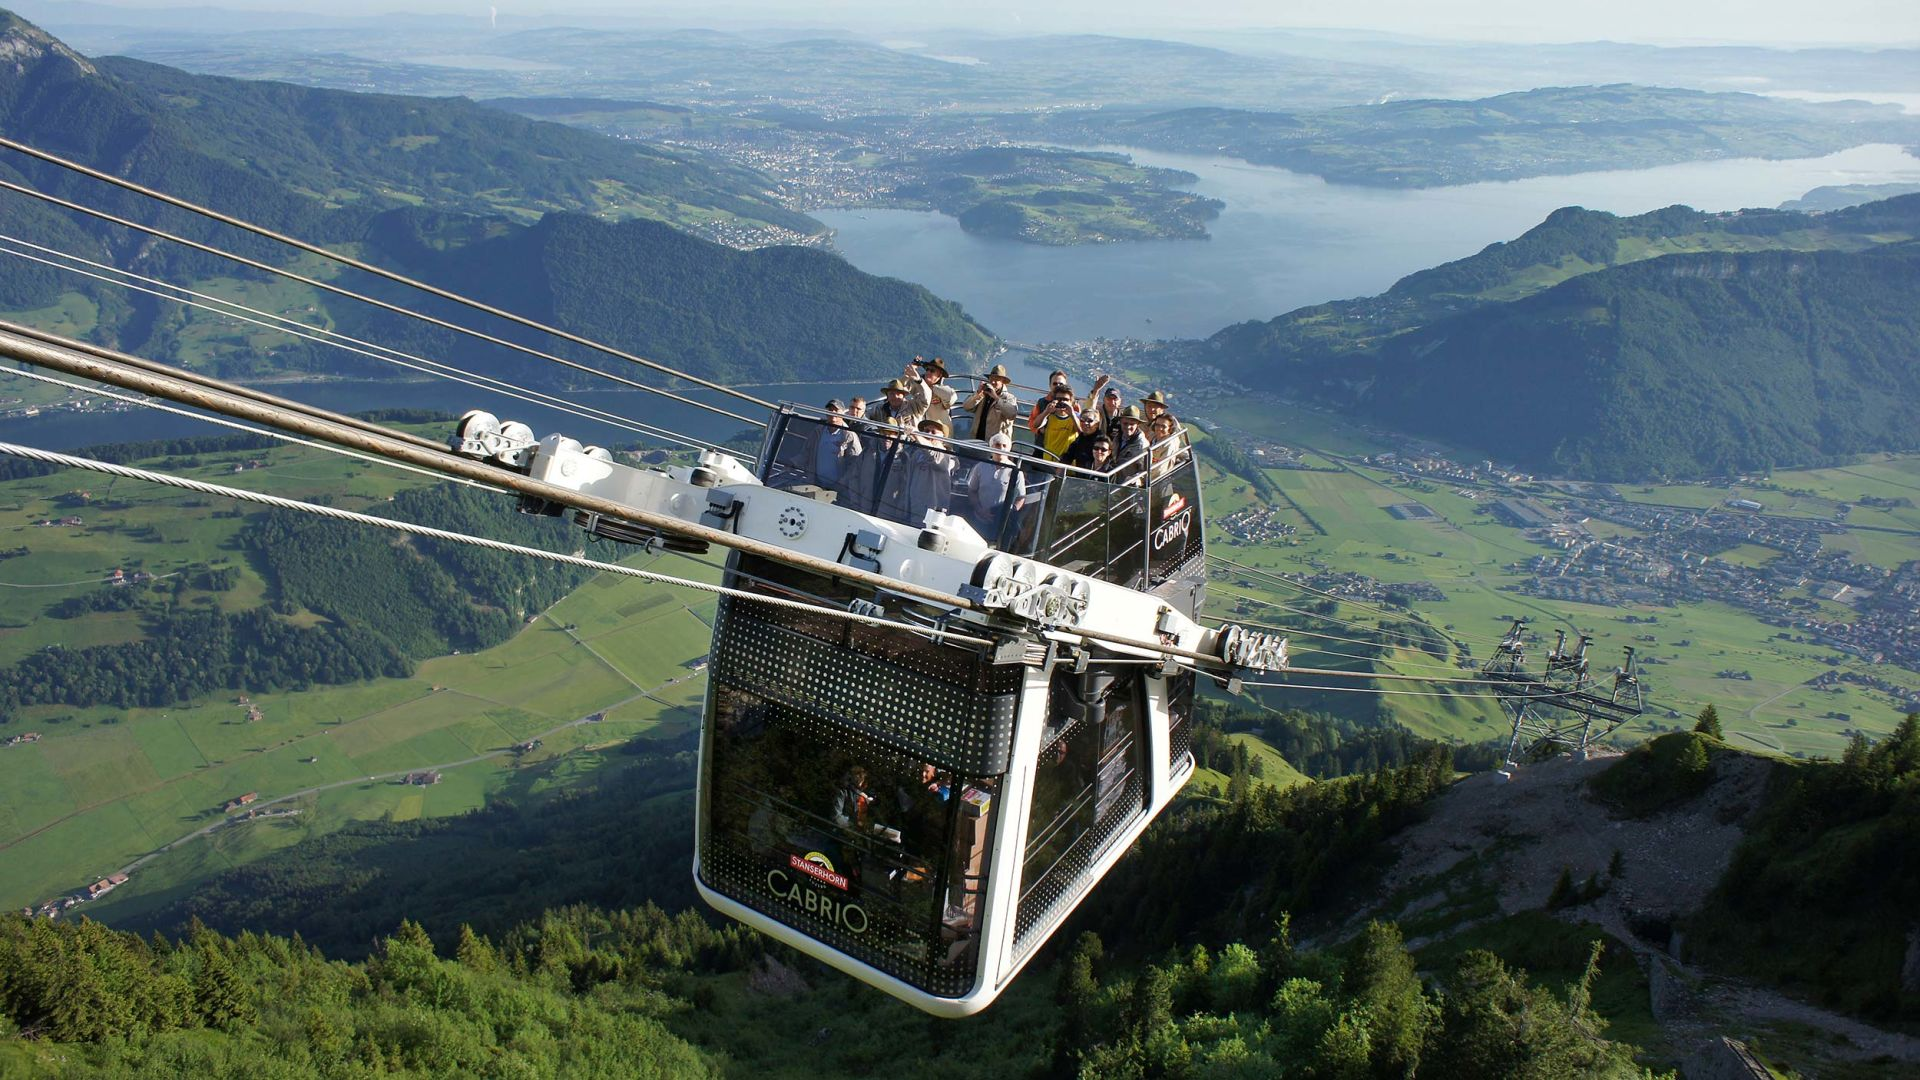 mountain cable car carrying people going up a mountain, view of lake and mountains